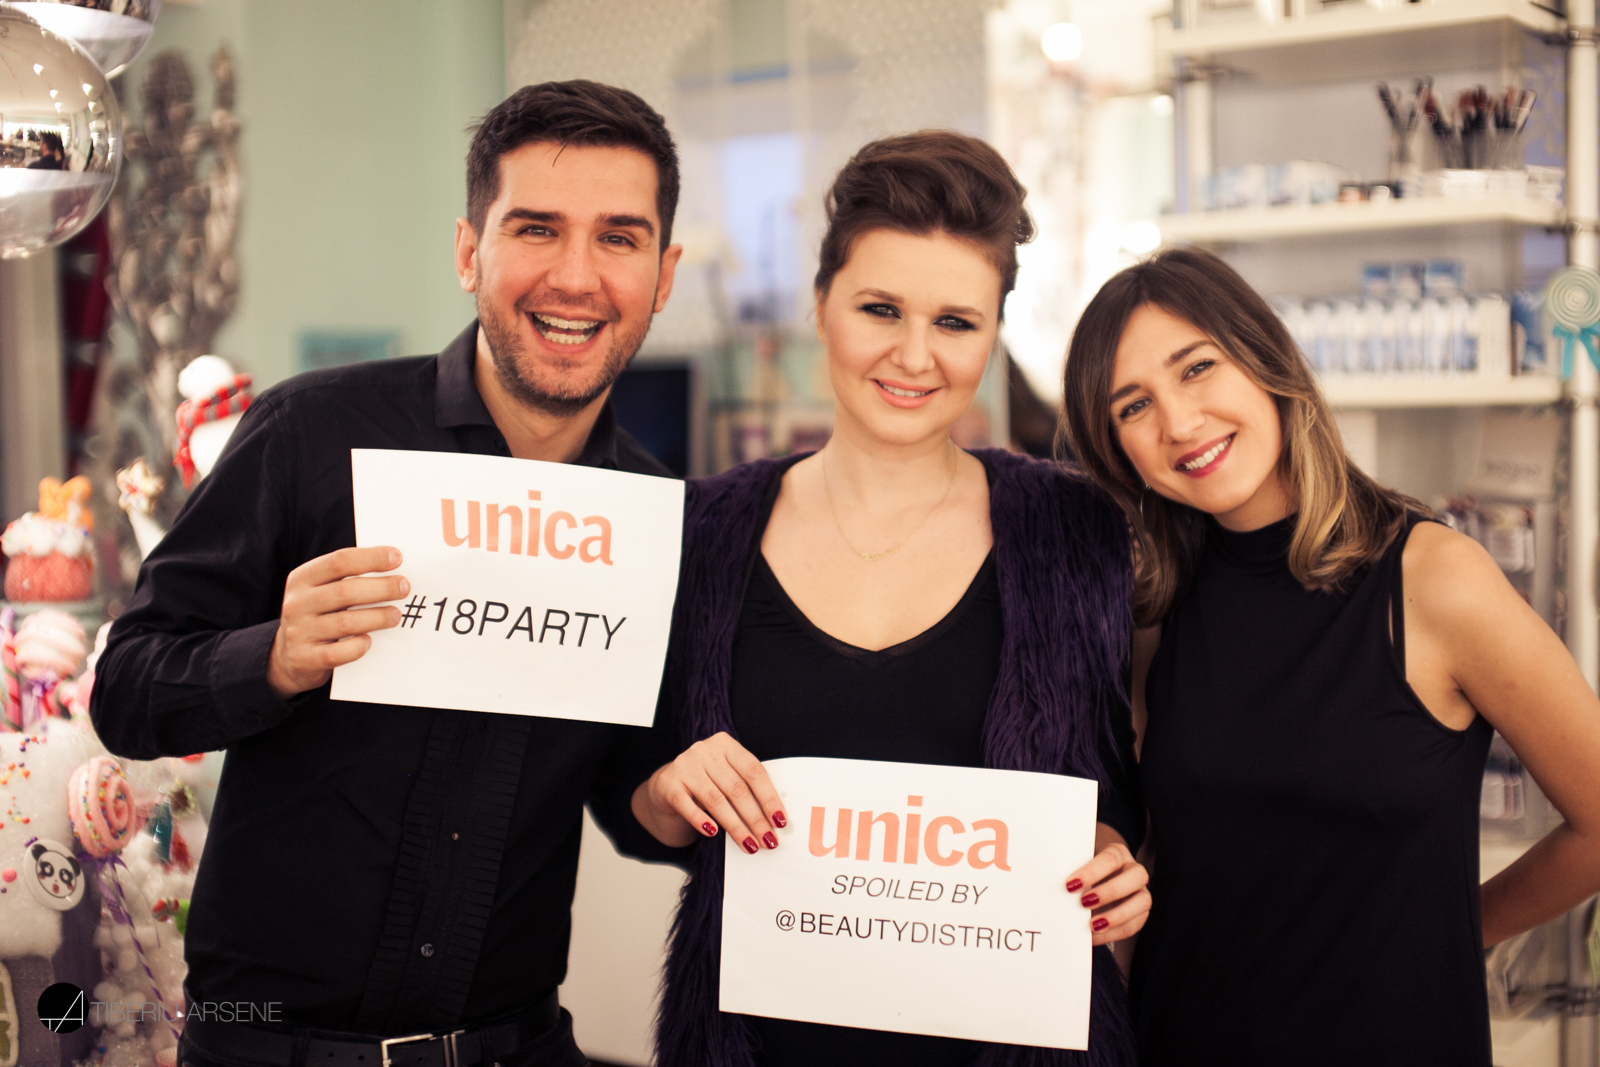 unica-18-party-11.jpg